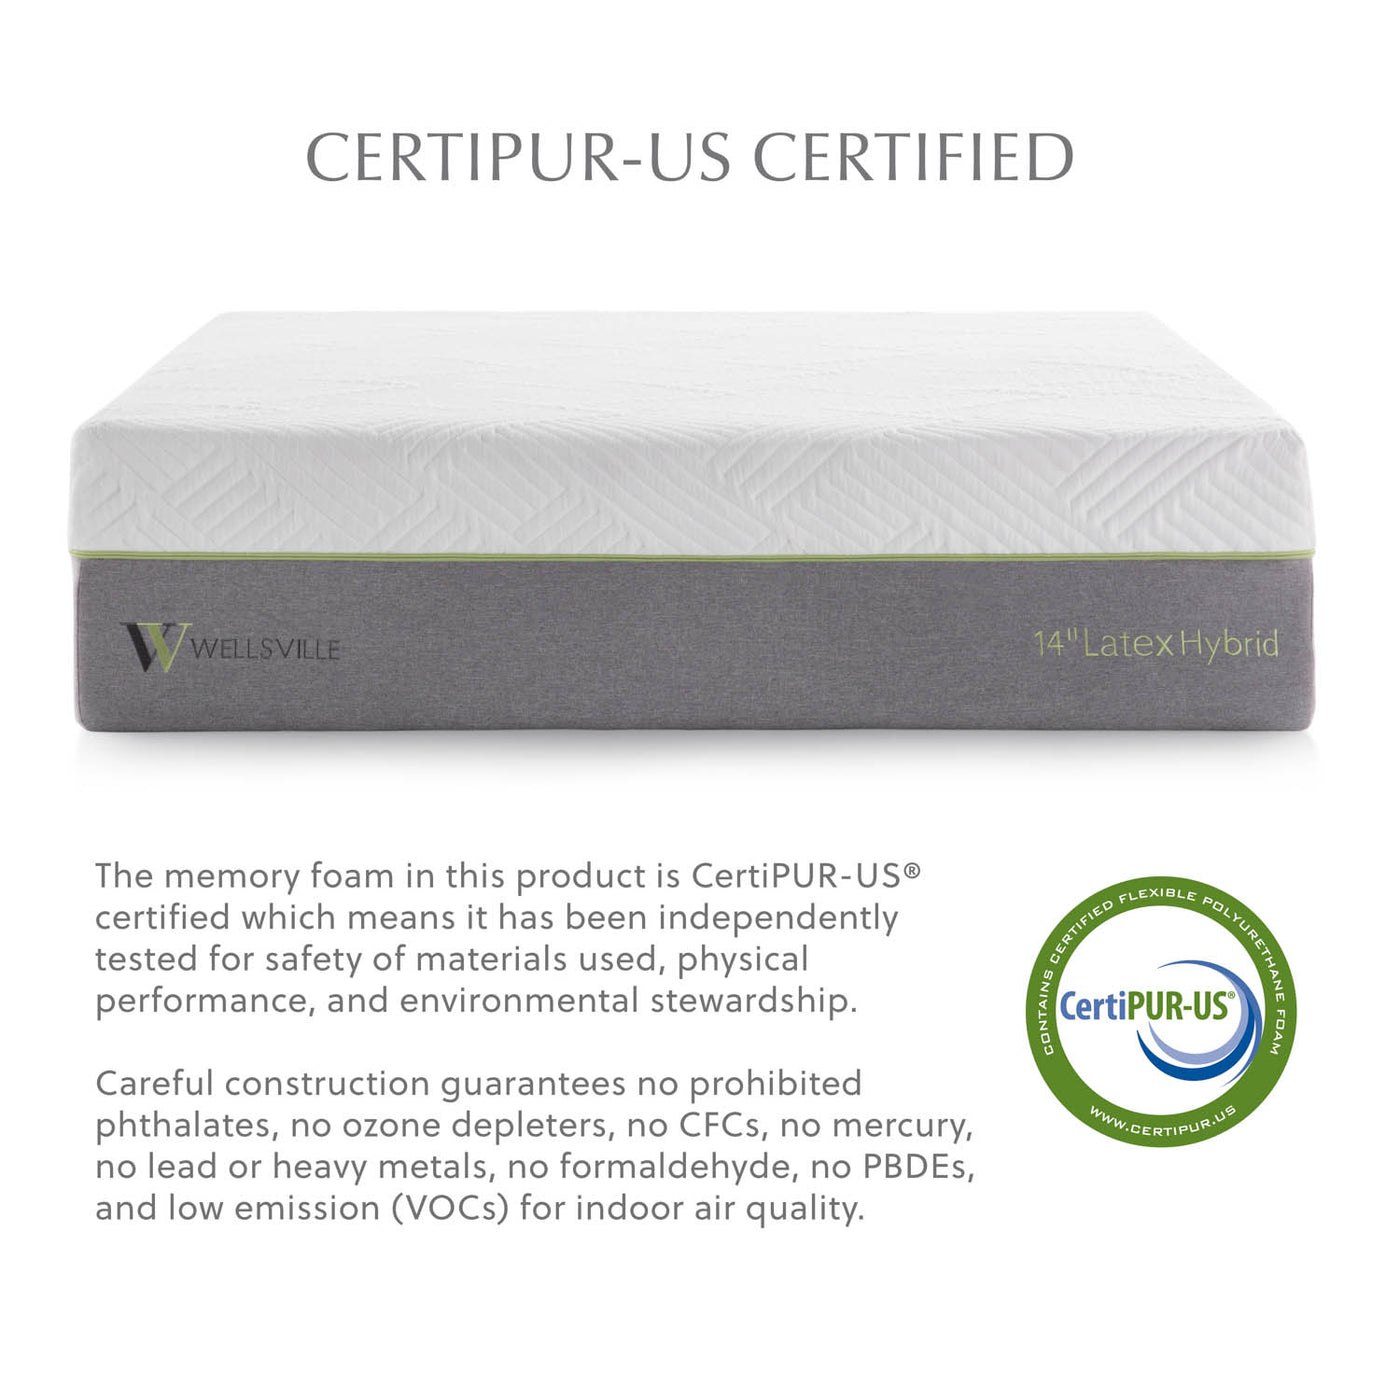 Why You Should Buy A CertiPUR-US Certified Mattress?